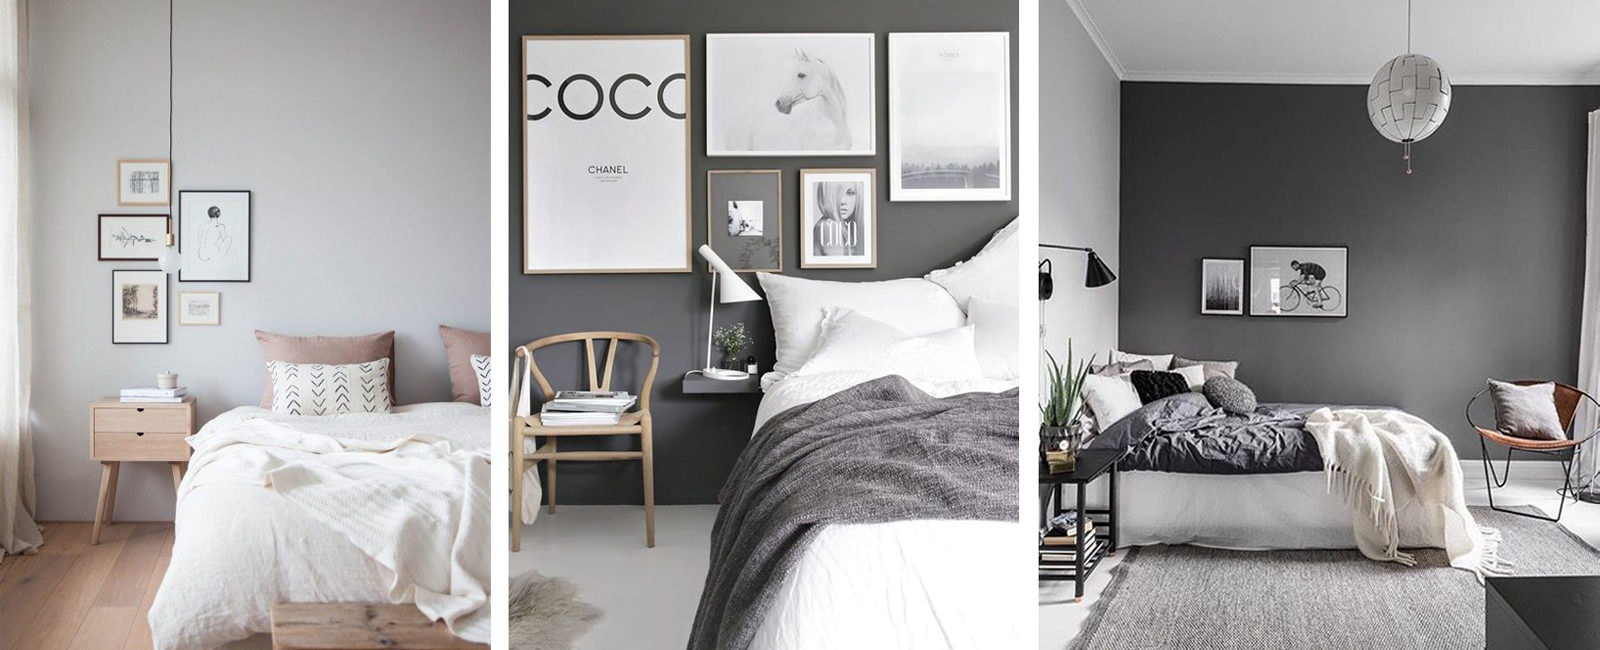 My bedroom restyling– option 1